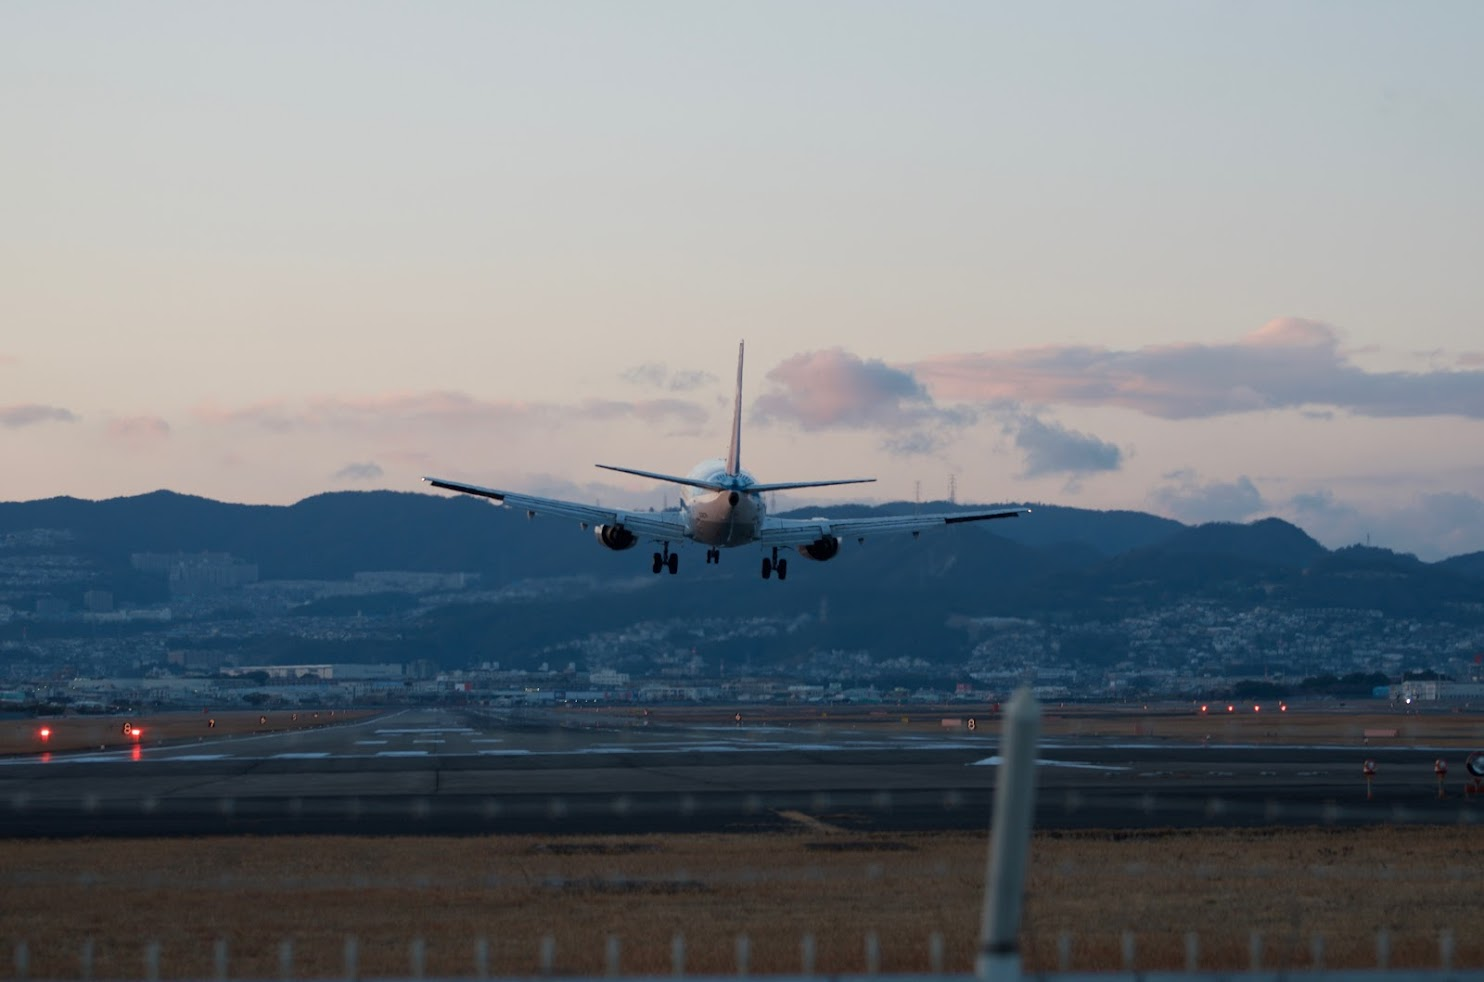 Landing at Osaka (Itami) International Airport